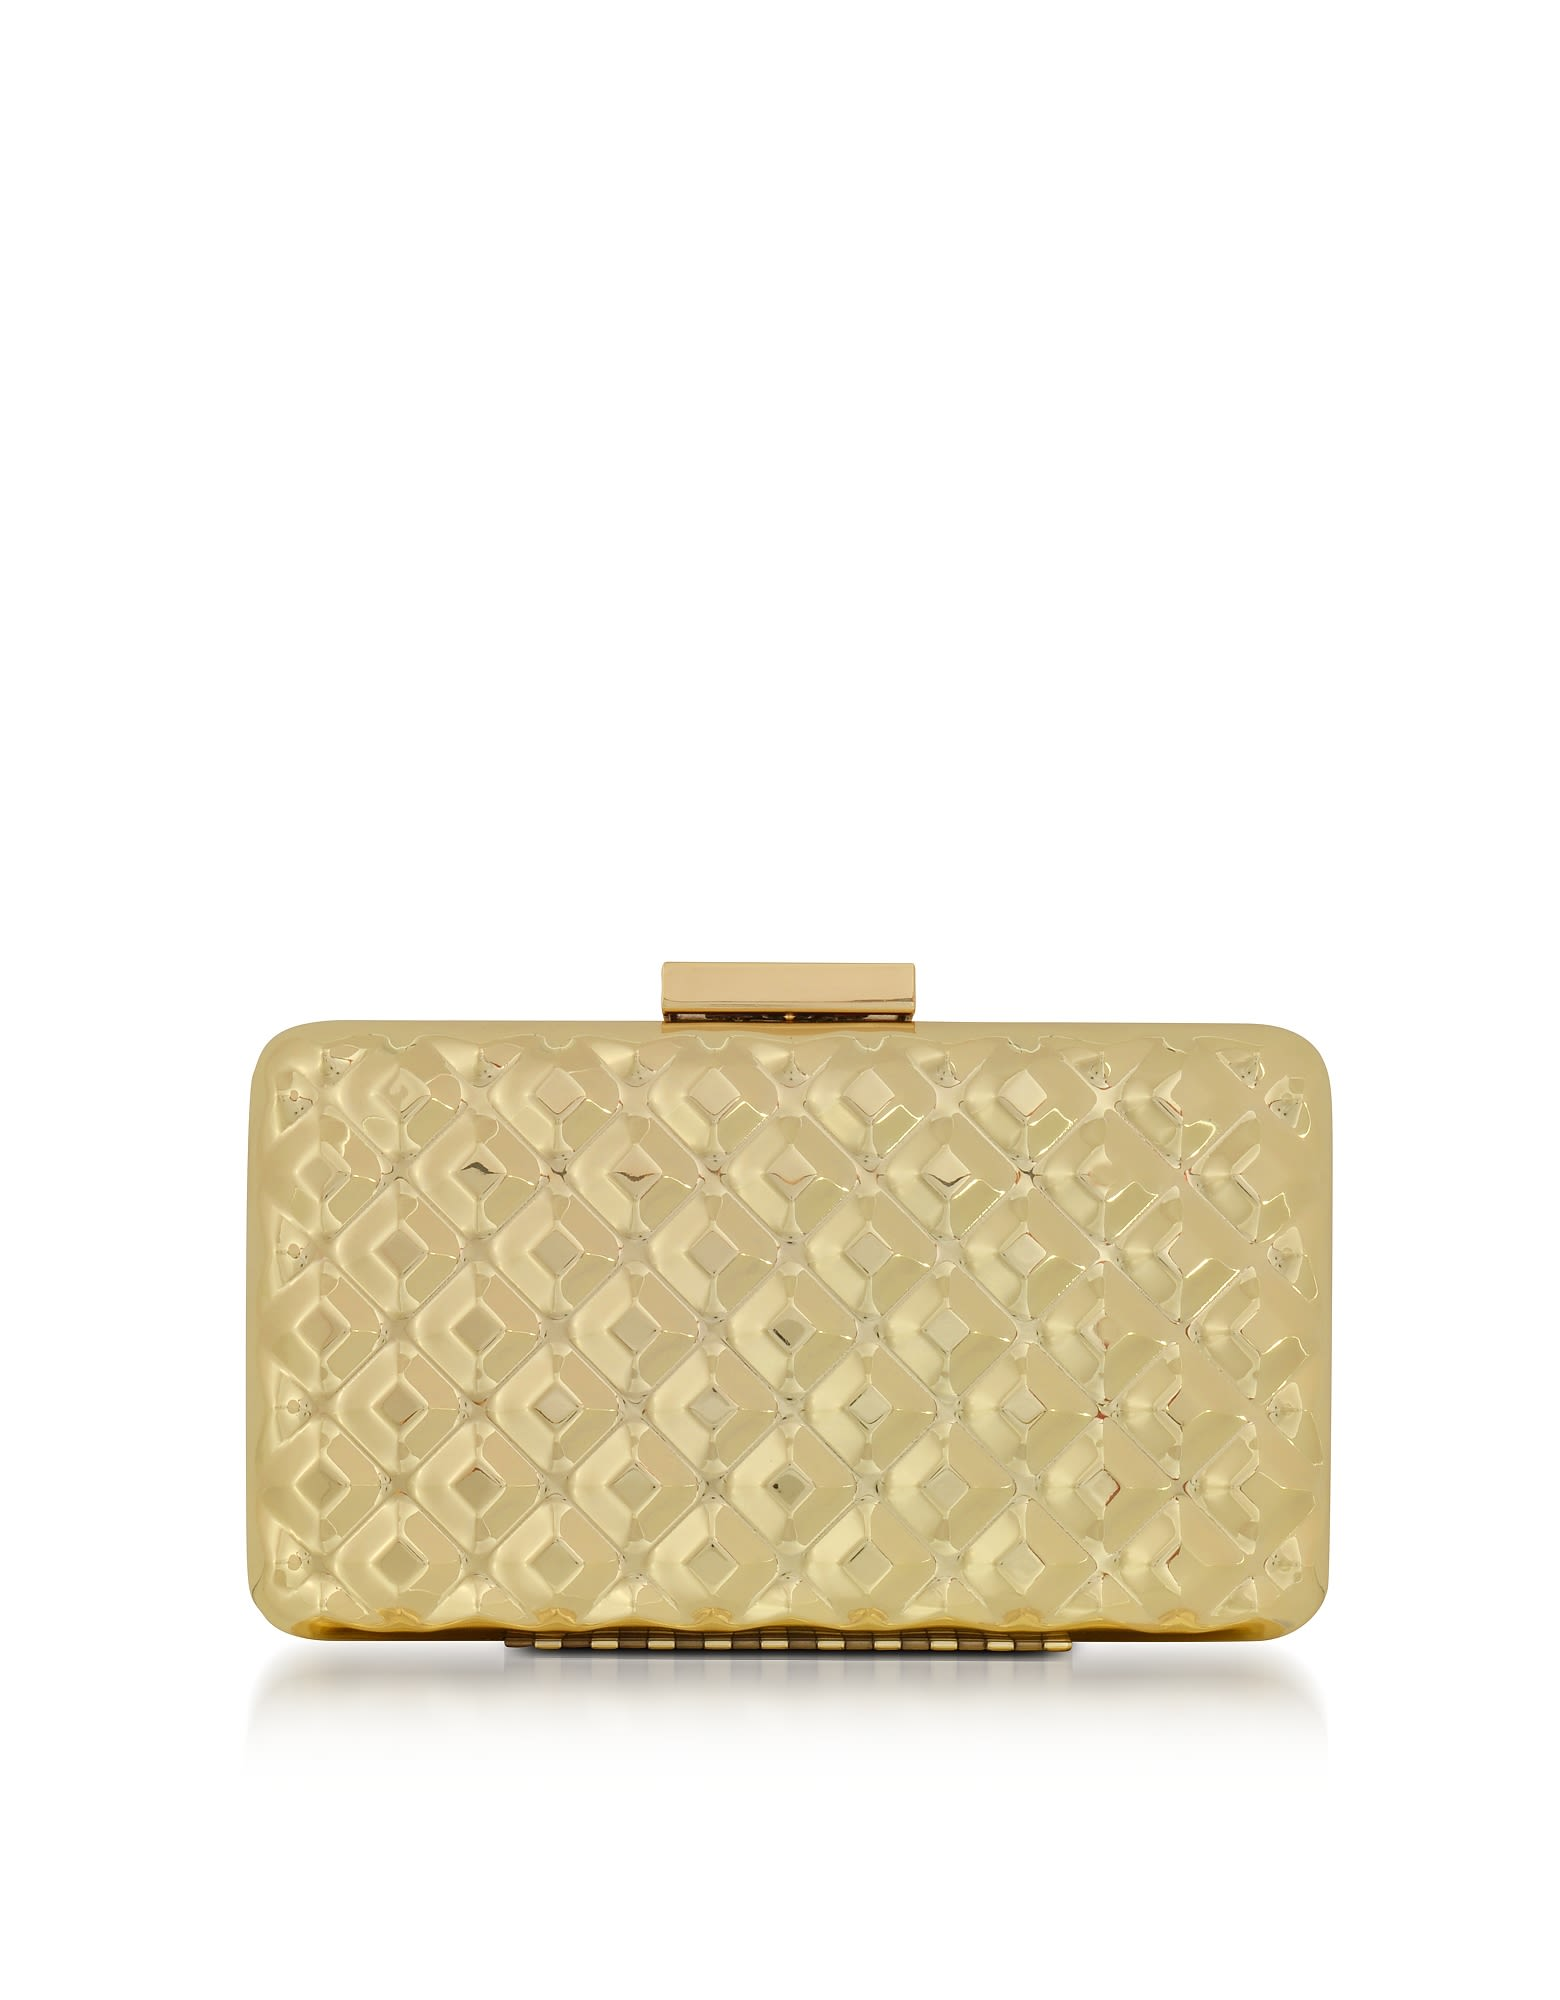 Love Moschino Clutches EVENING BAG METAL GOLD CLUTCH W-CHAIN